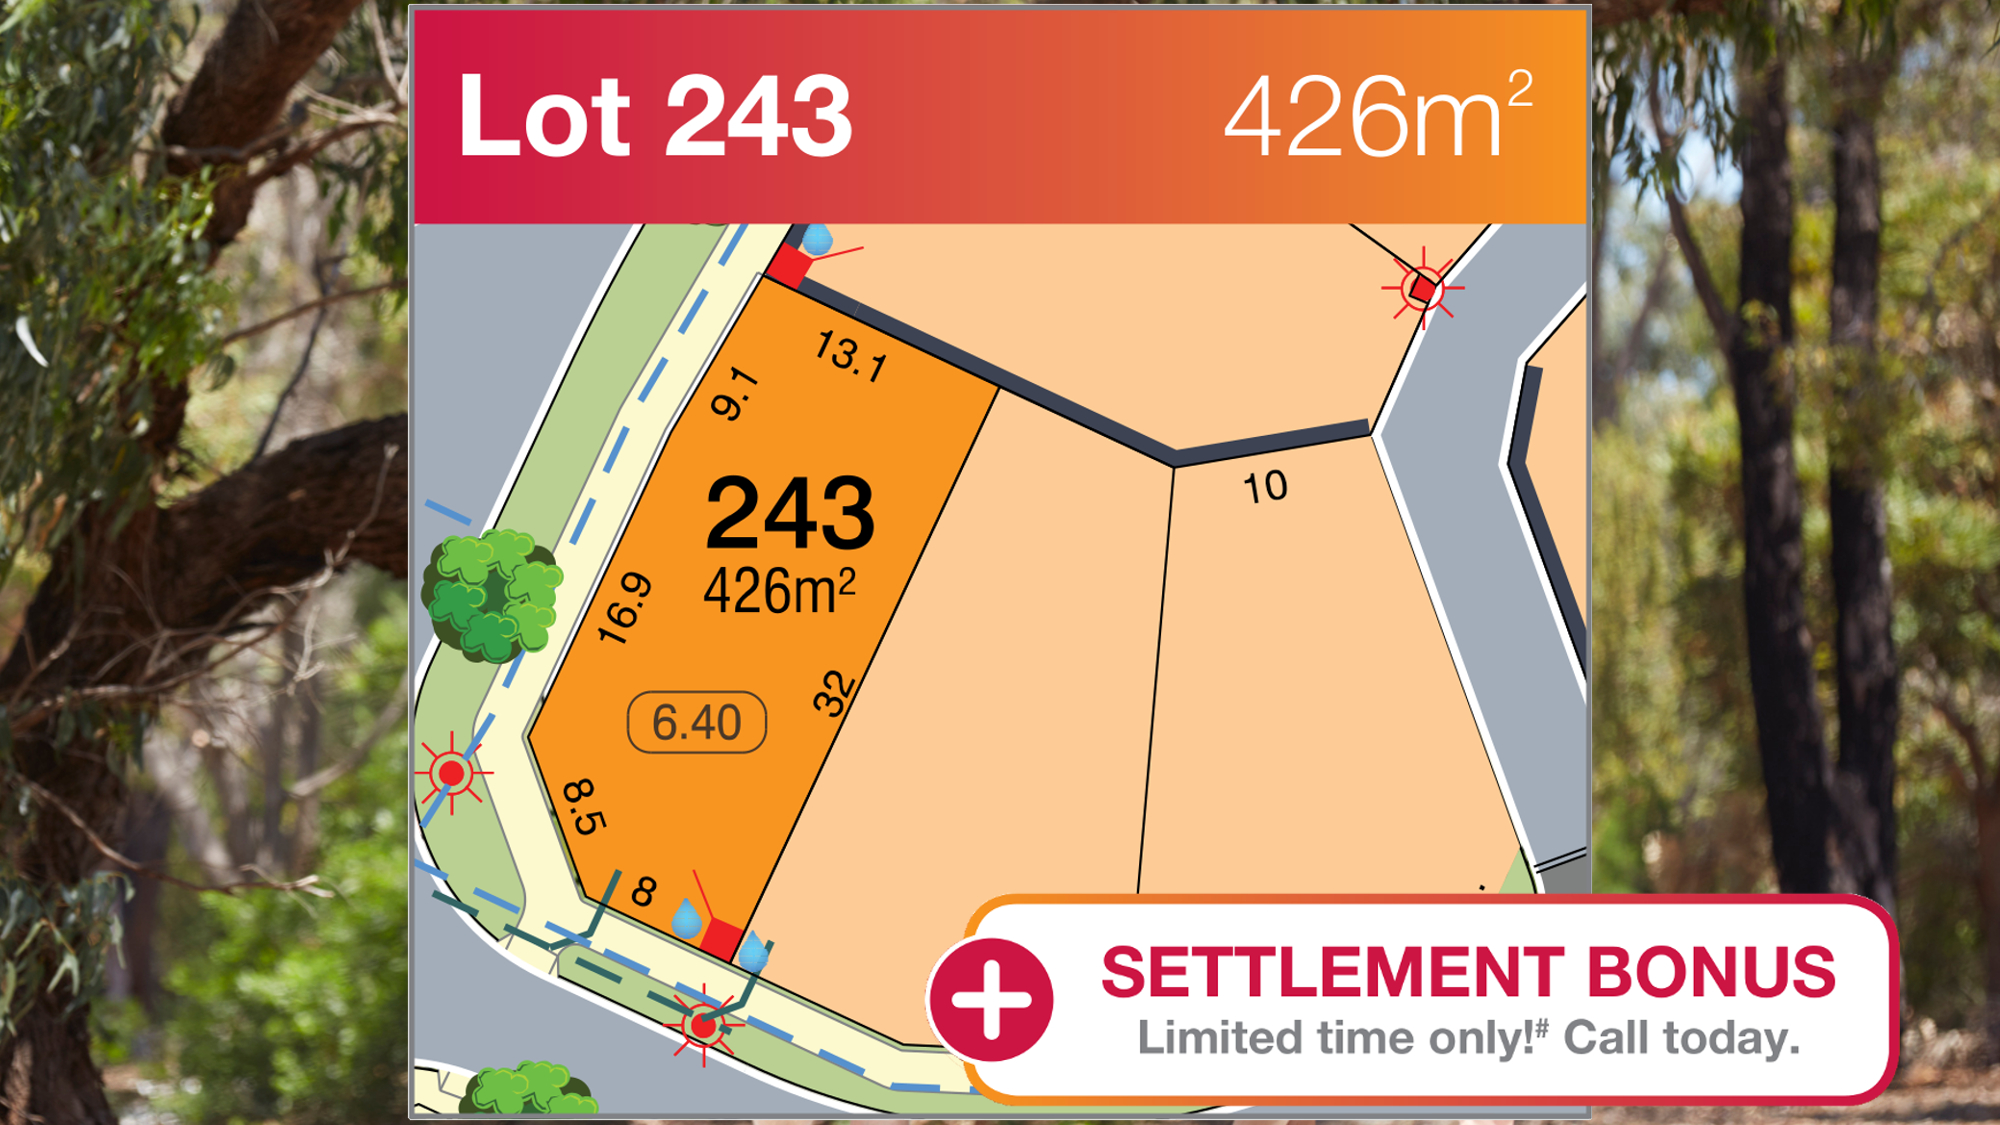 Lot 243 - Baldivis Parks Developer Special